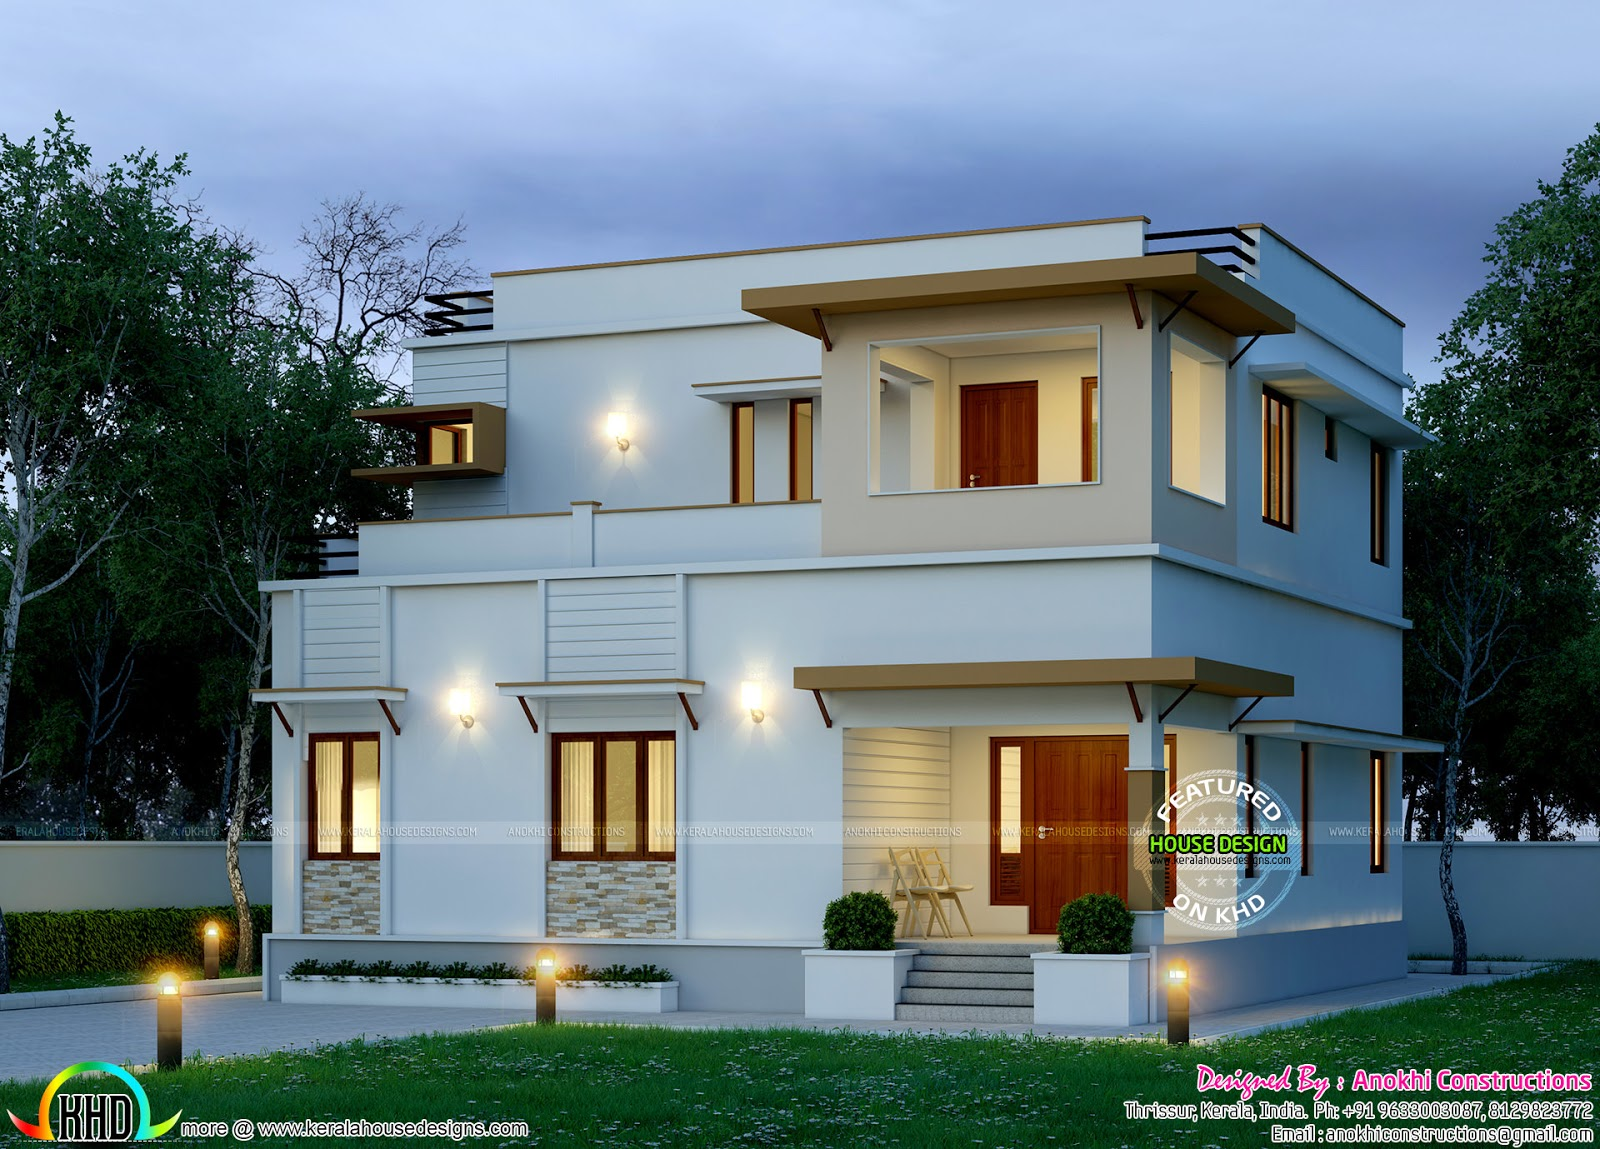 Modern Home Images 2016 austin modern home tour house 2708 townes lane bercy chen studio front Design Style Modern Estimated Cost 31 Lakhs 46850 May Change Time To Time And Place To Place